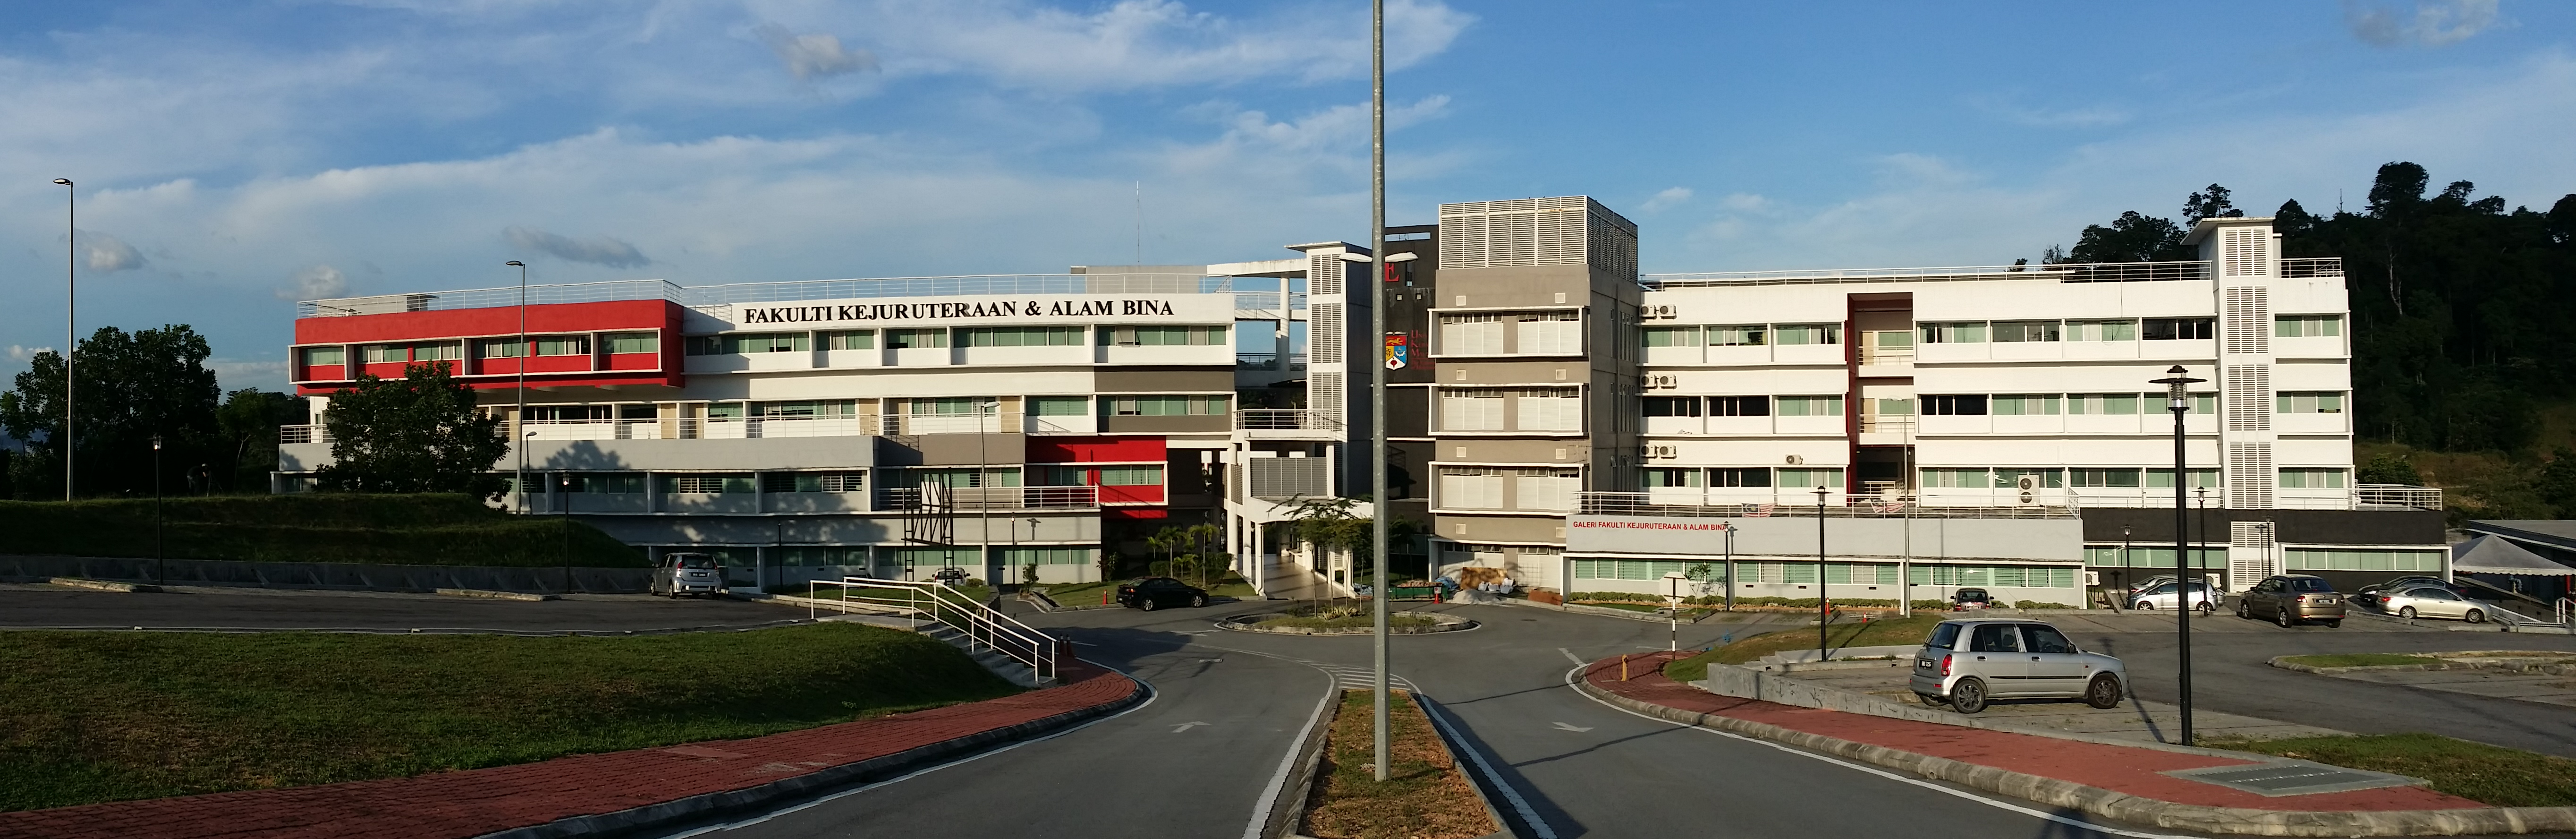 UKM's Faculty of Engineering and Built Environment